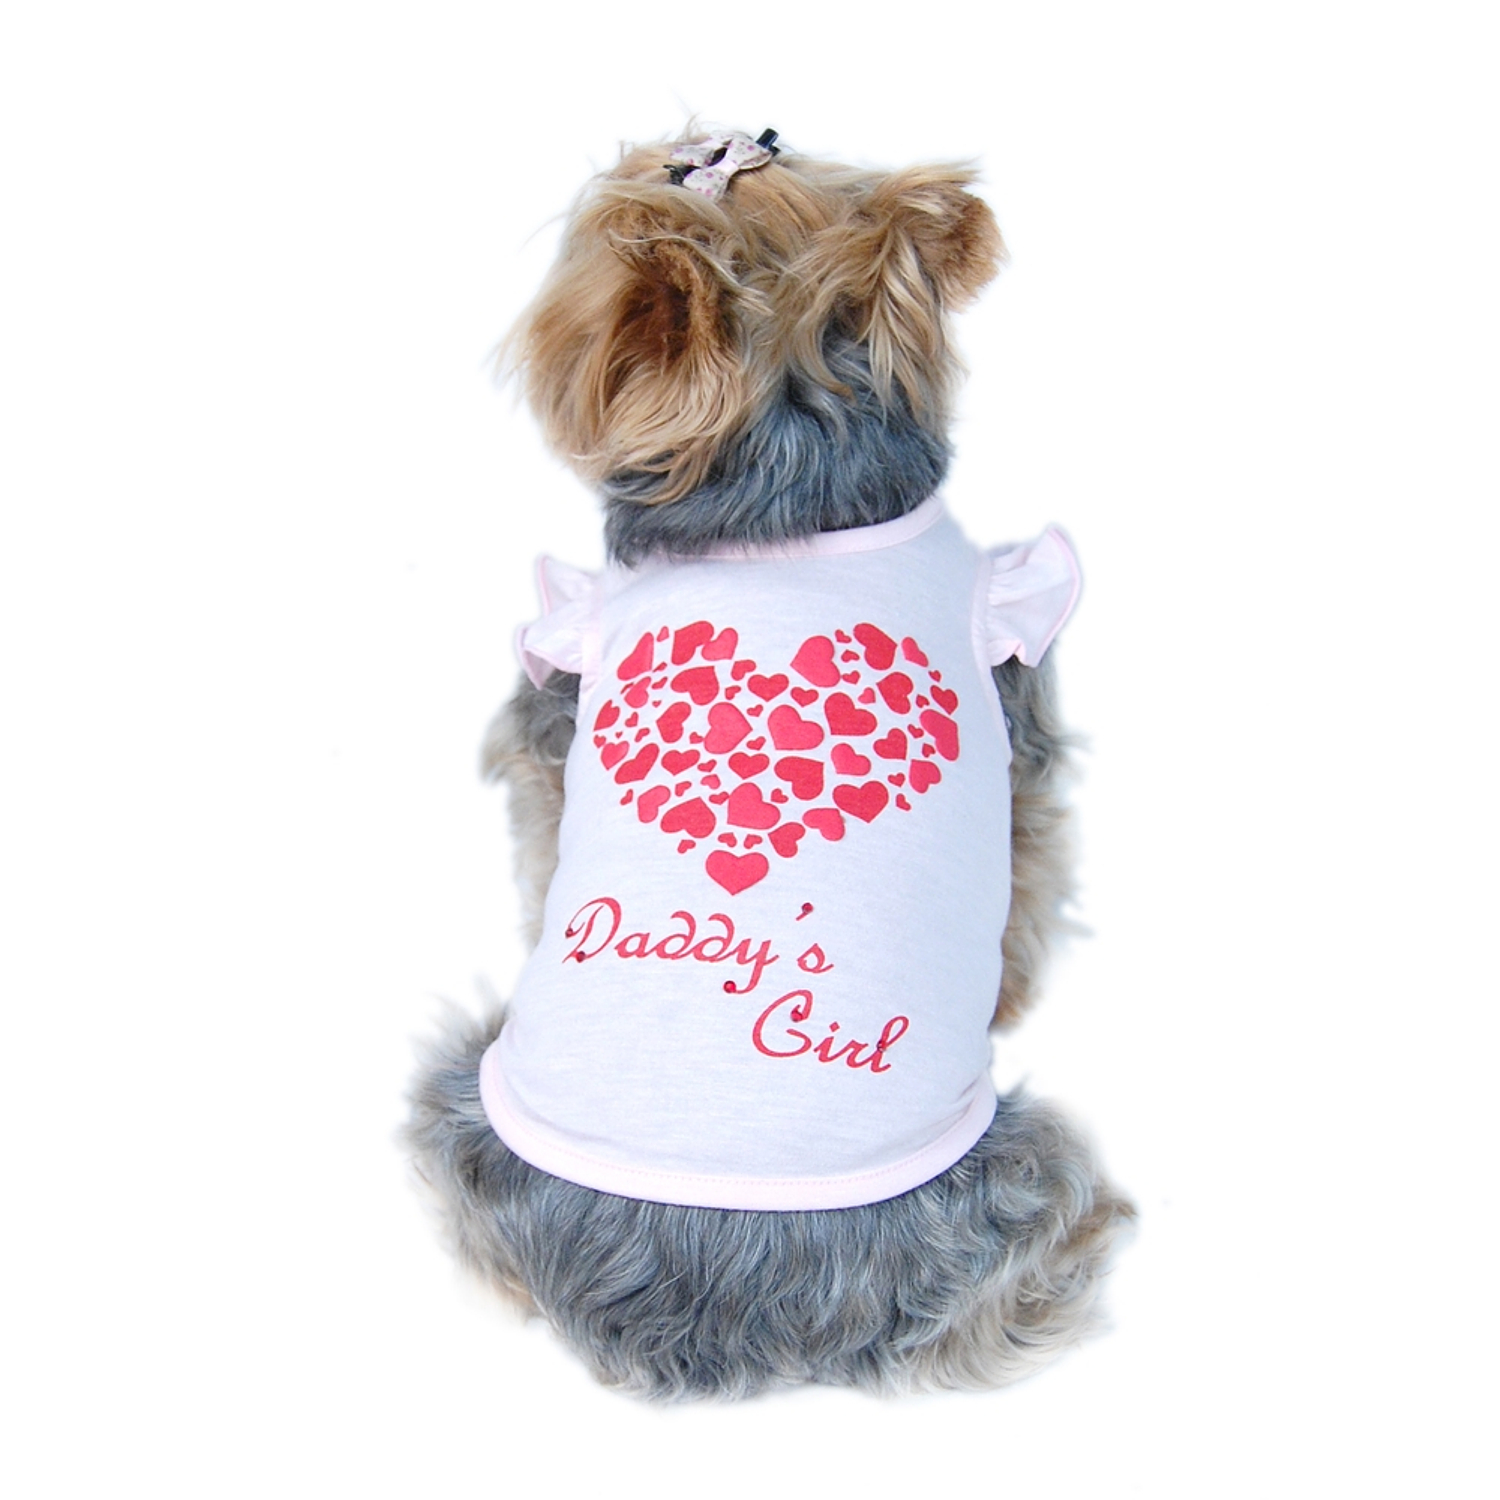 Pet Dog Rhinestone Dress Cat Puppy Skirt Dress Princess Clothes Clothing Cute design (Gift for Pet)